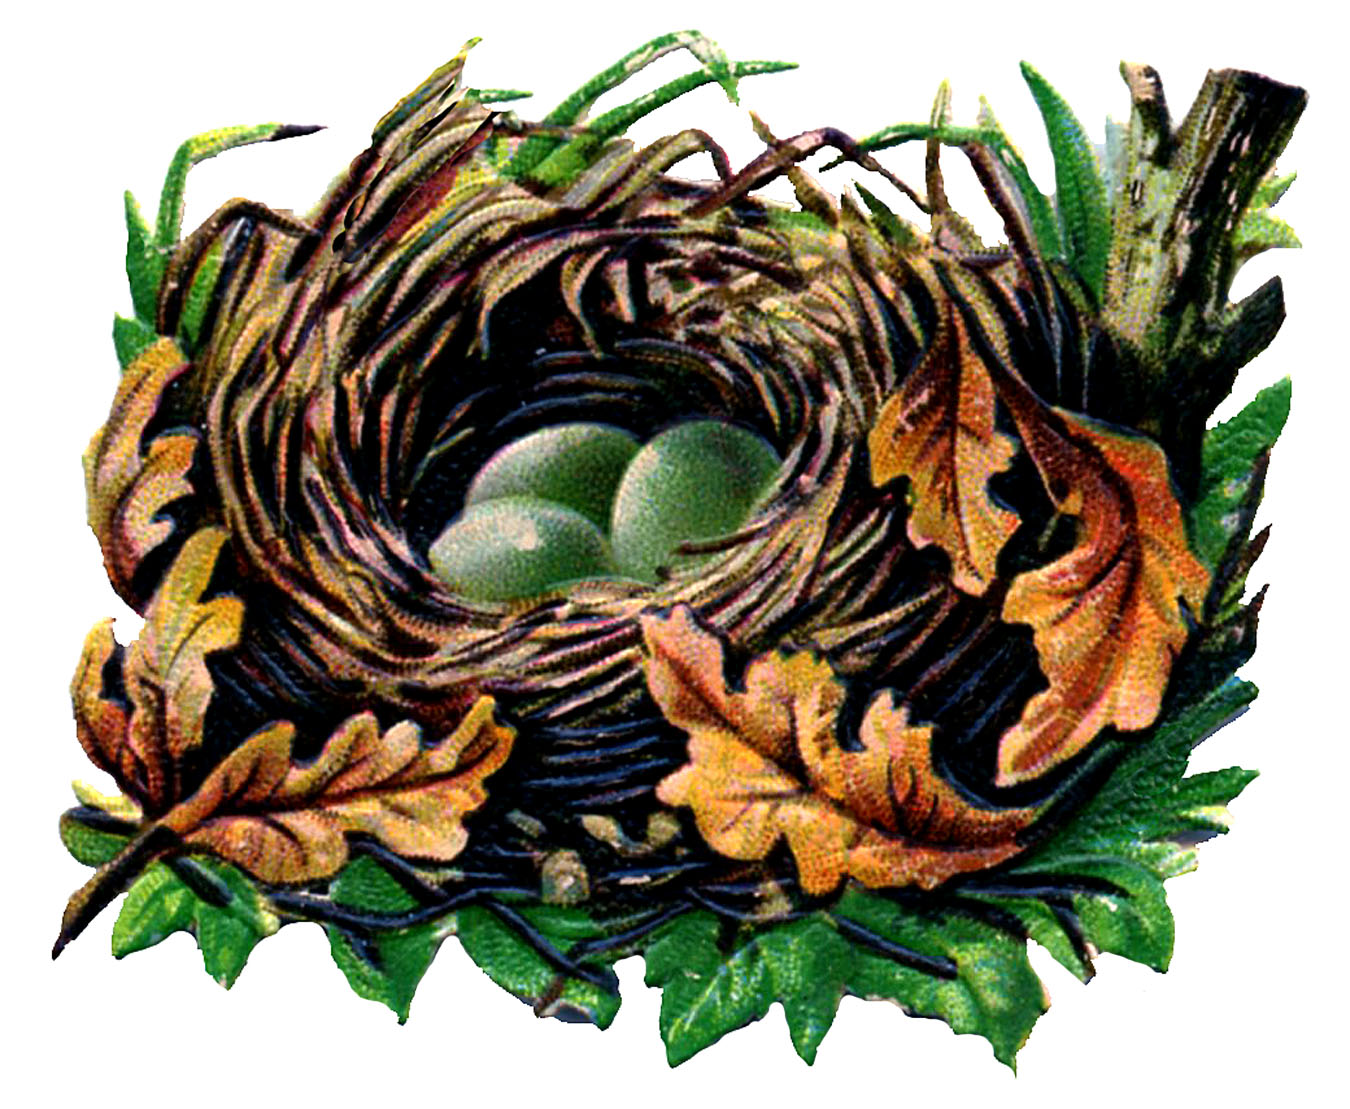 Vintage Graphic Fall Nest With Eggs The Graphics Fairy